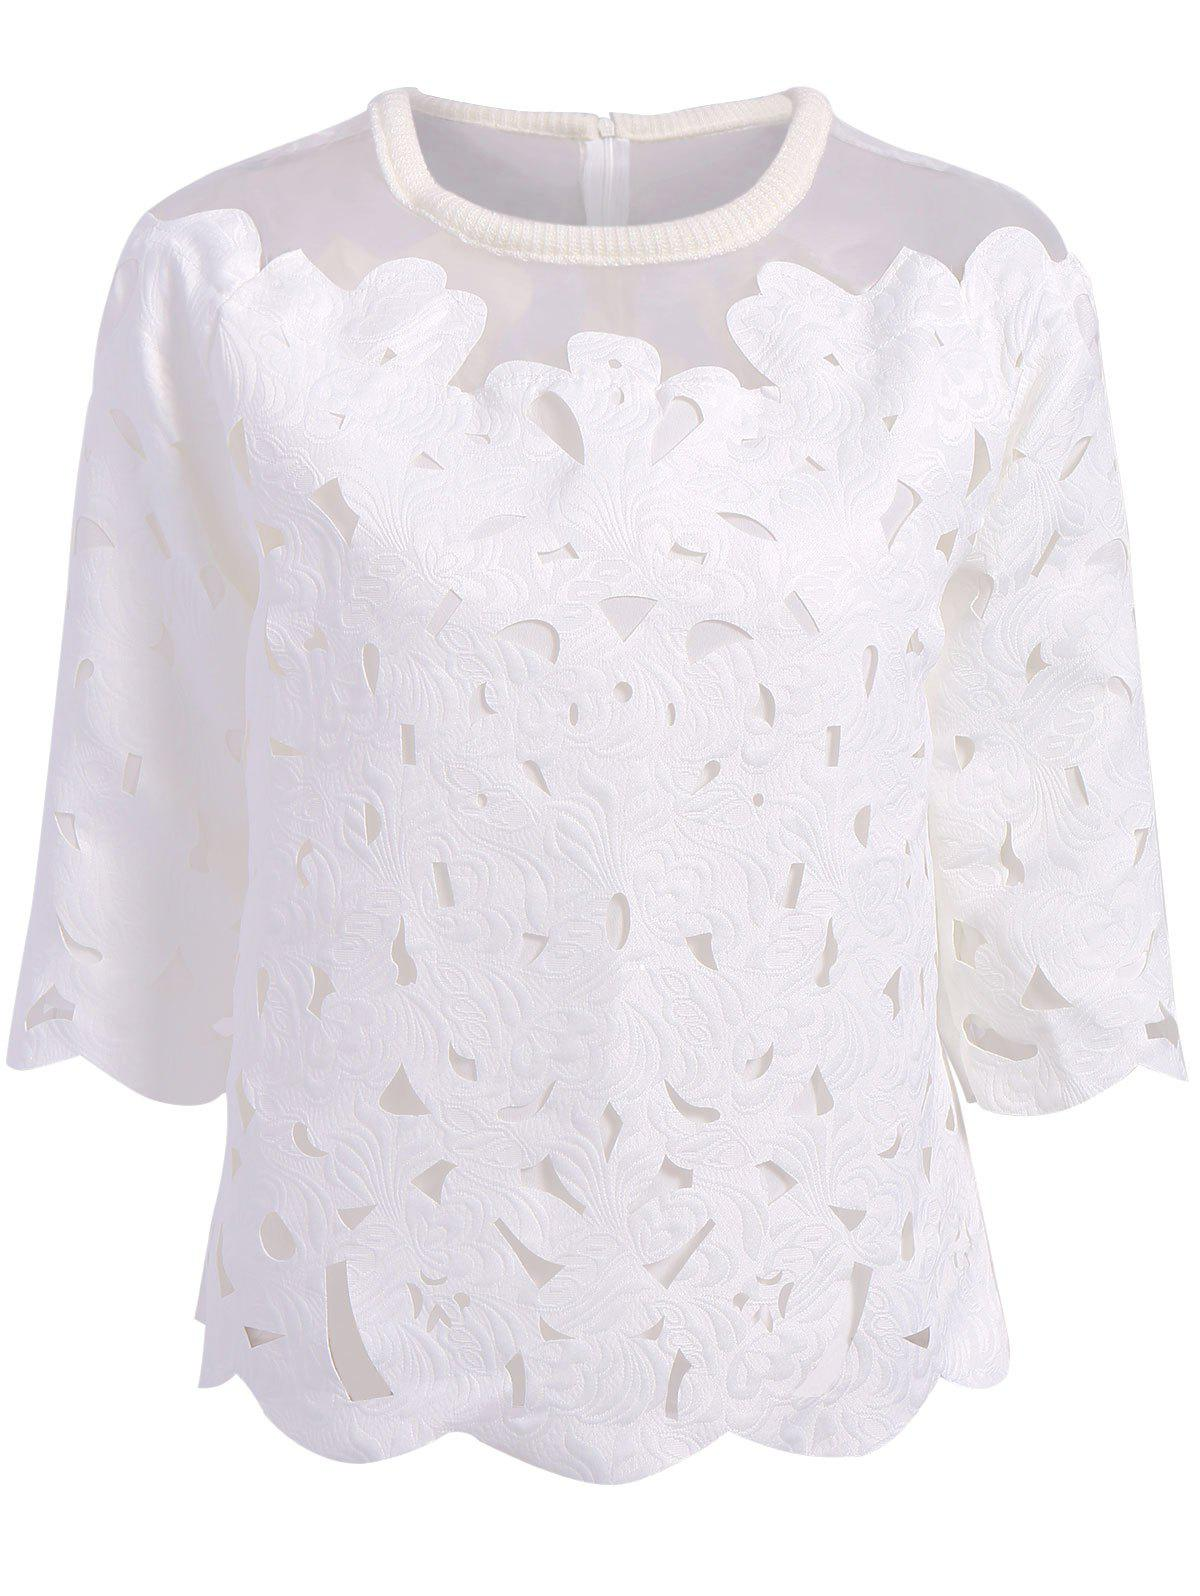 Sweet Organza Splicing Round Neck 3/4 Sleeve Blouse For Women - WHITE ONE SIZE(FIT SIZE XS TO M)